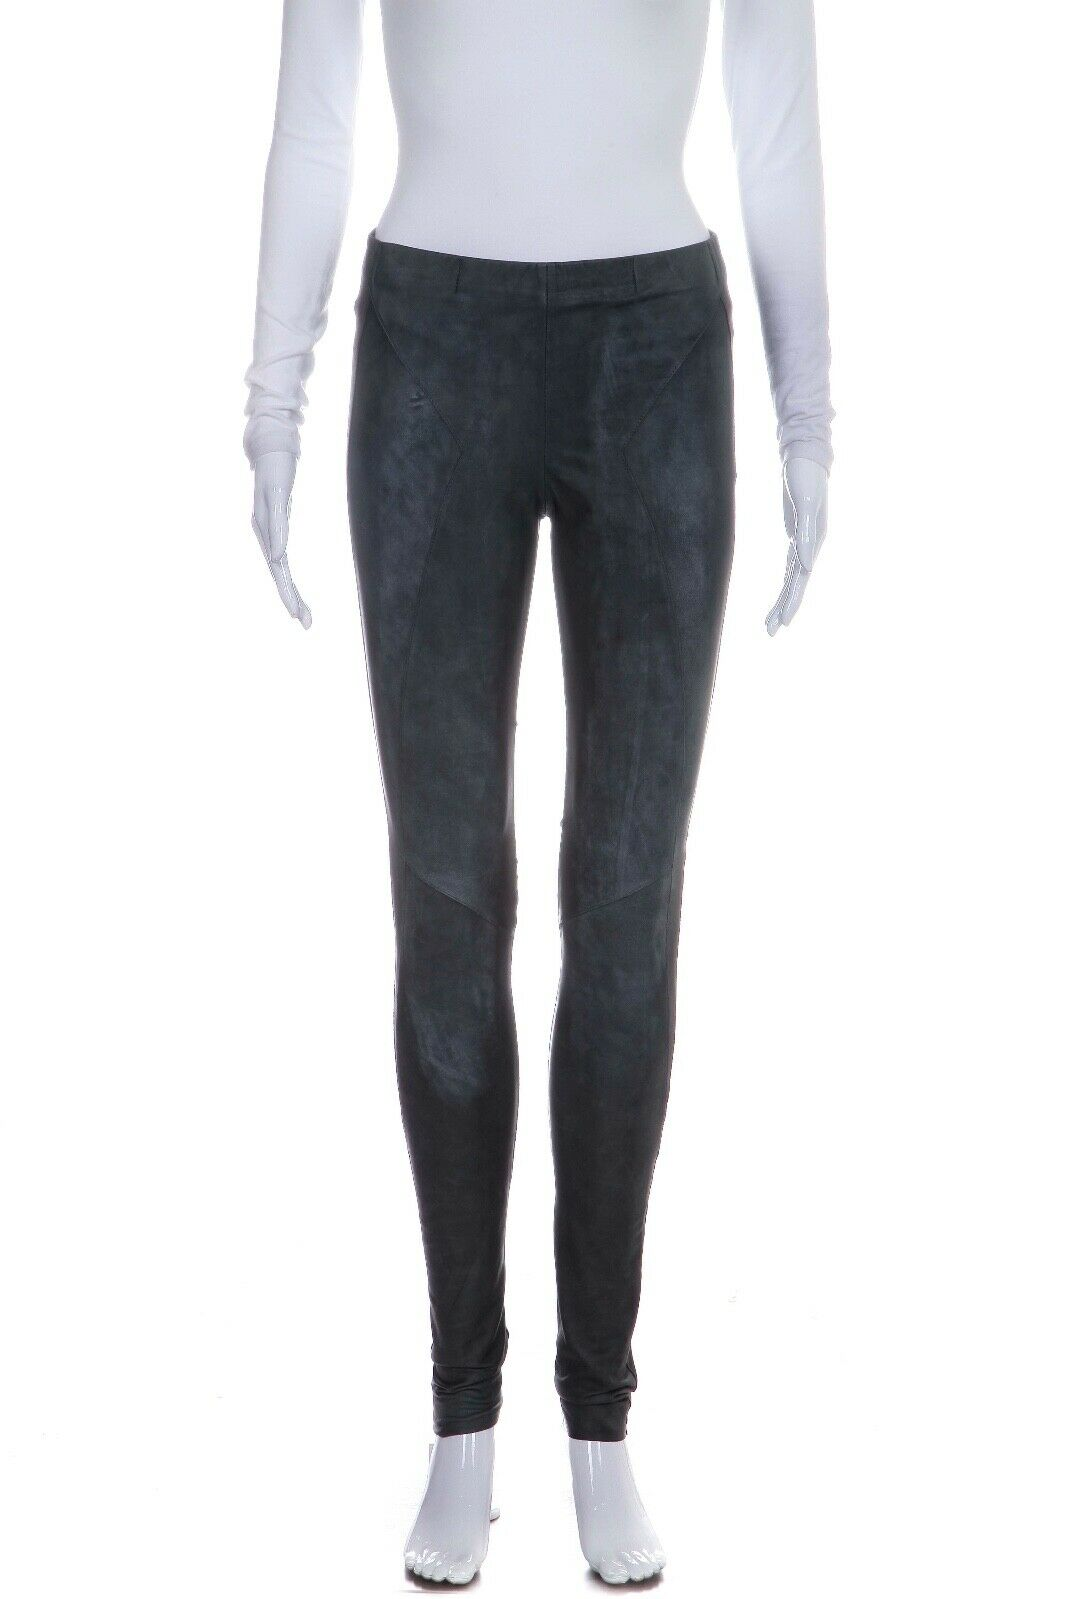 MONARCH 1 Tapered Leather Blend Legging Pants Size S (New)